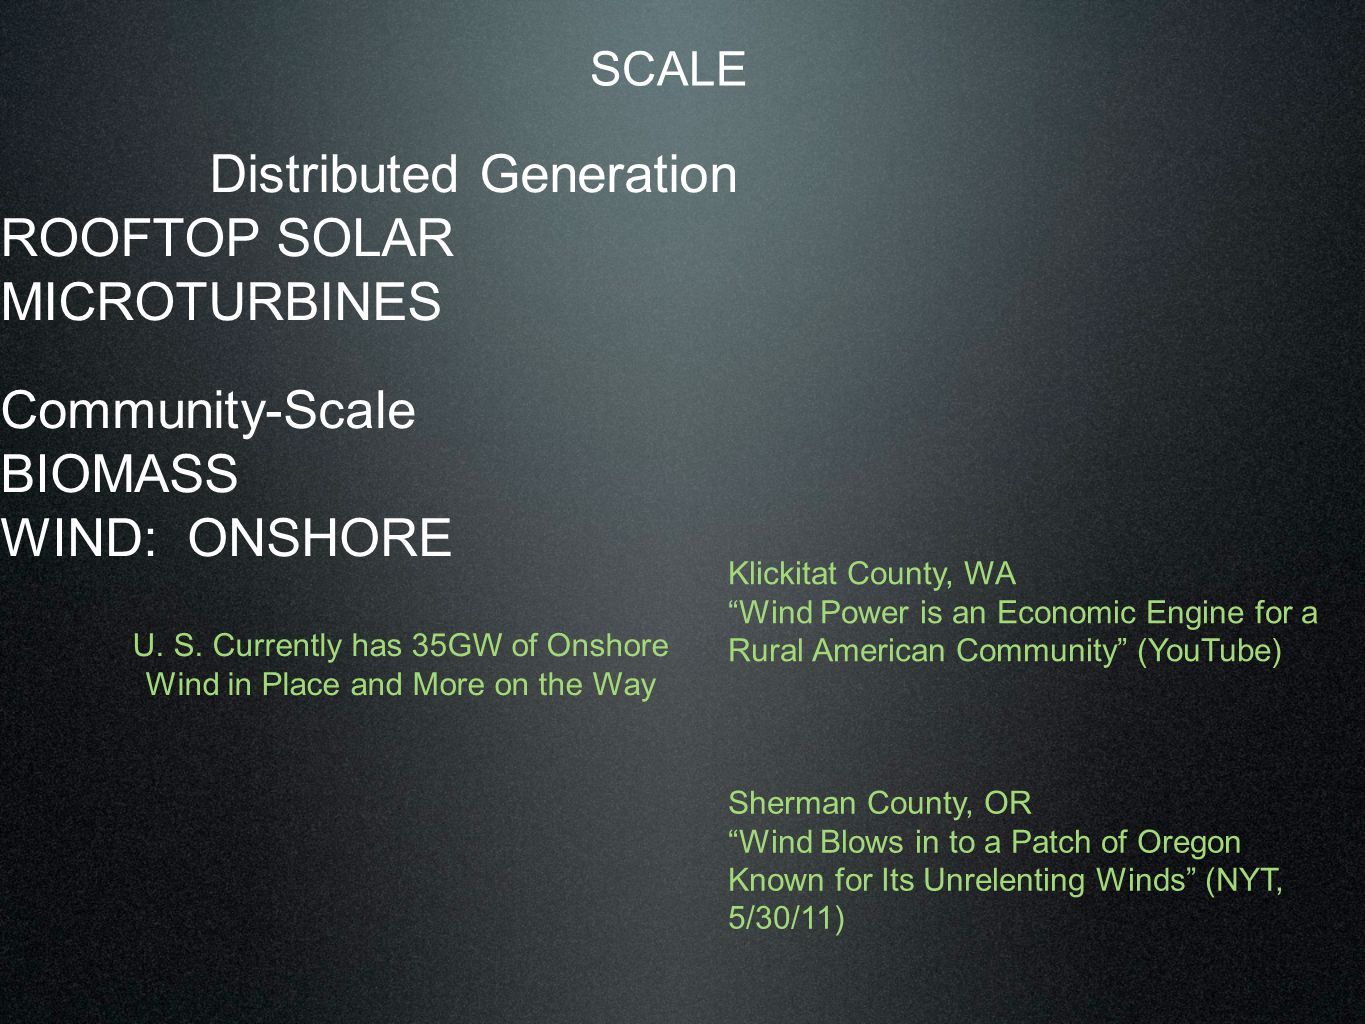 SCALE Distributed Generation ROOFTOP SOLAR MICROTURBINES Community-Scale BIOMASS WIND: ONSHORE Biomass Klickitat County, WA Wind Power is an Economic Engine for a Rural American Community (YouTube) Sherman County, OR Wind Blows in to a Patch of Oregon Known for Its Unrelenting Winds (NYT, 5/30/11) U.